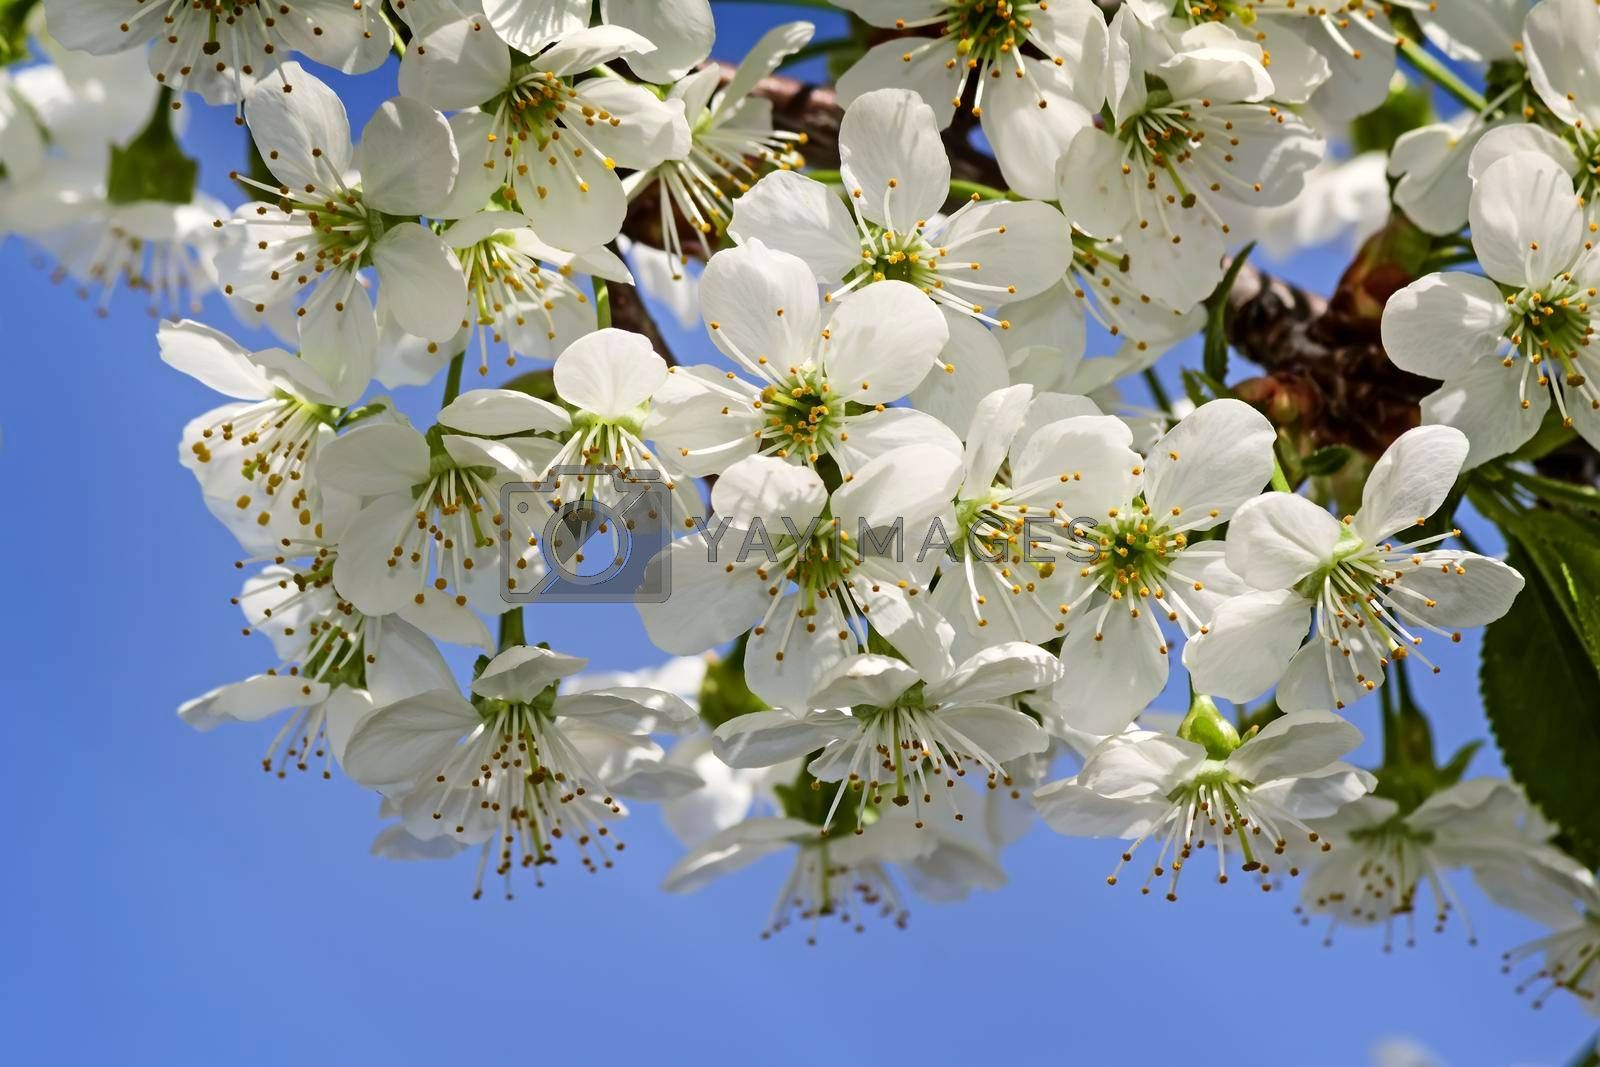 Cherry branch with a large number of white flowers against the blue sky.